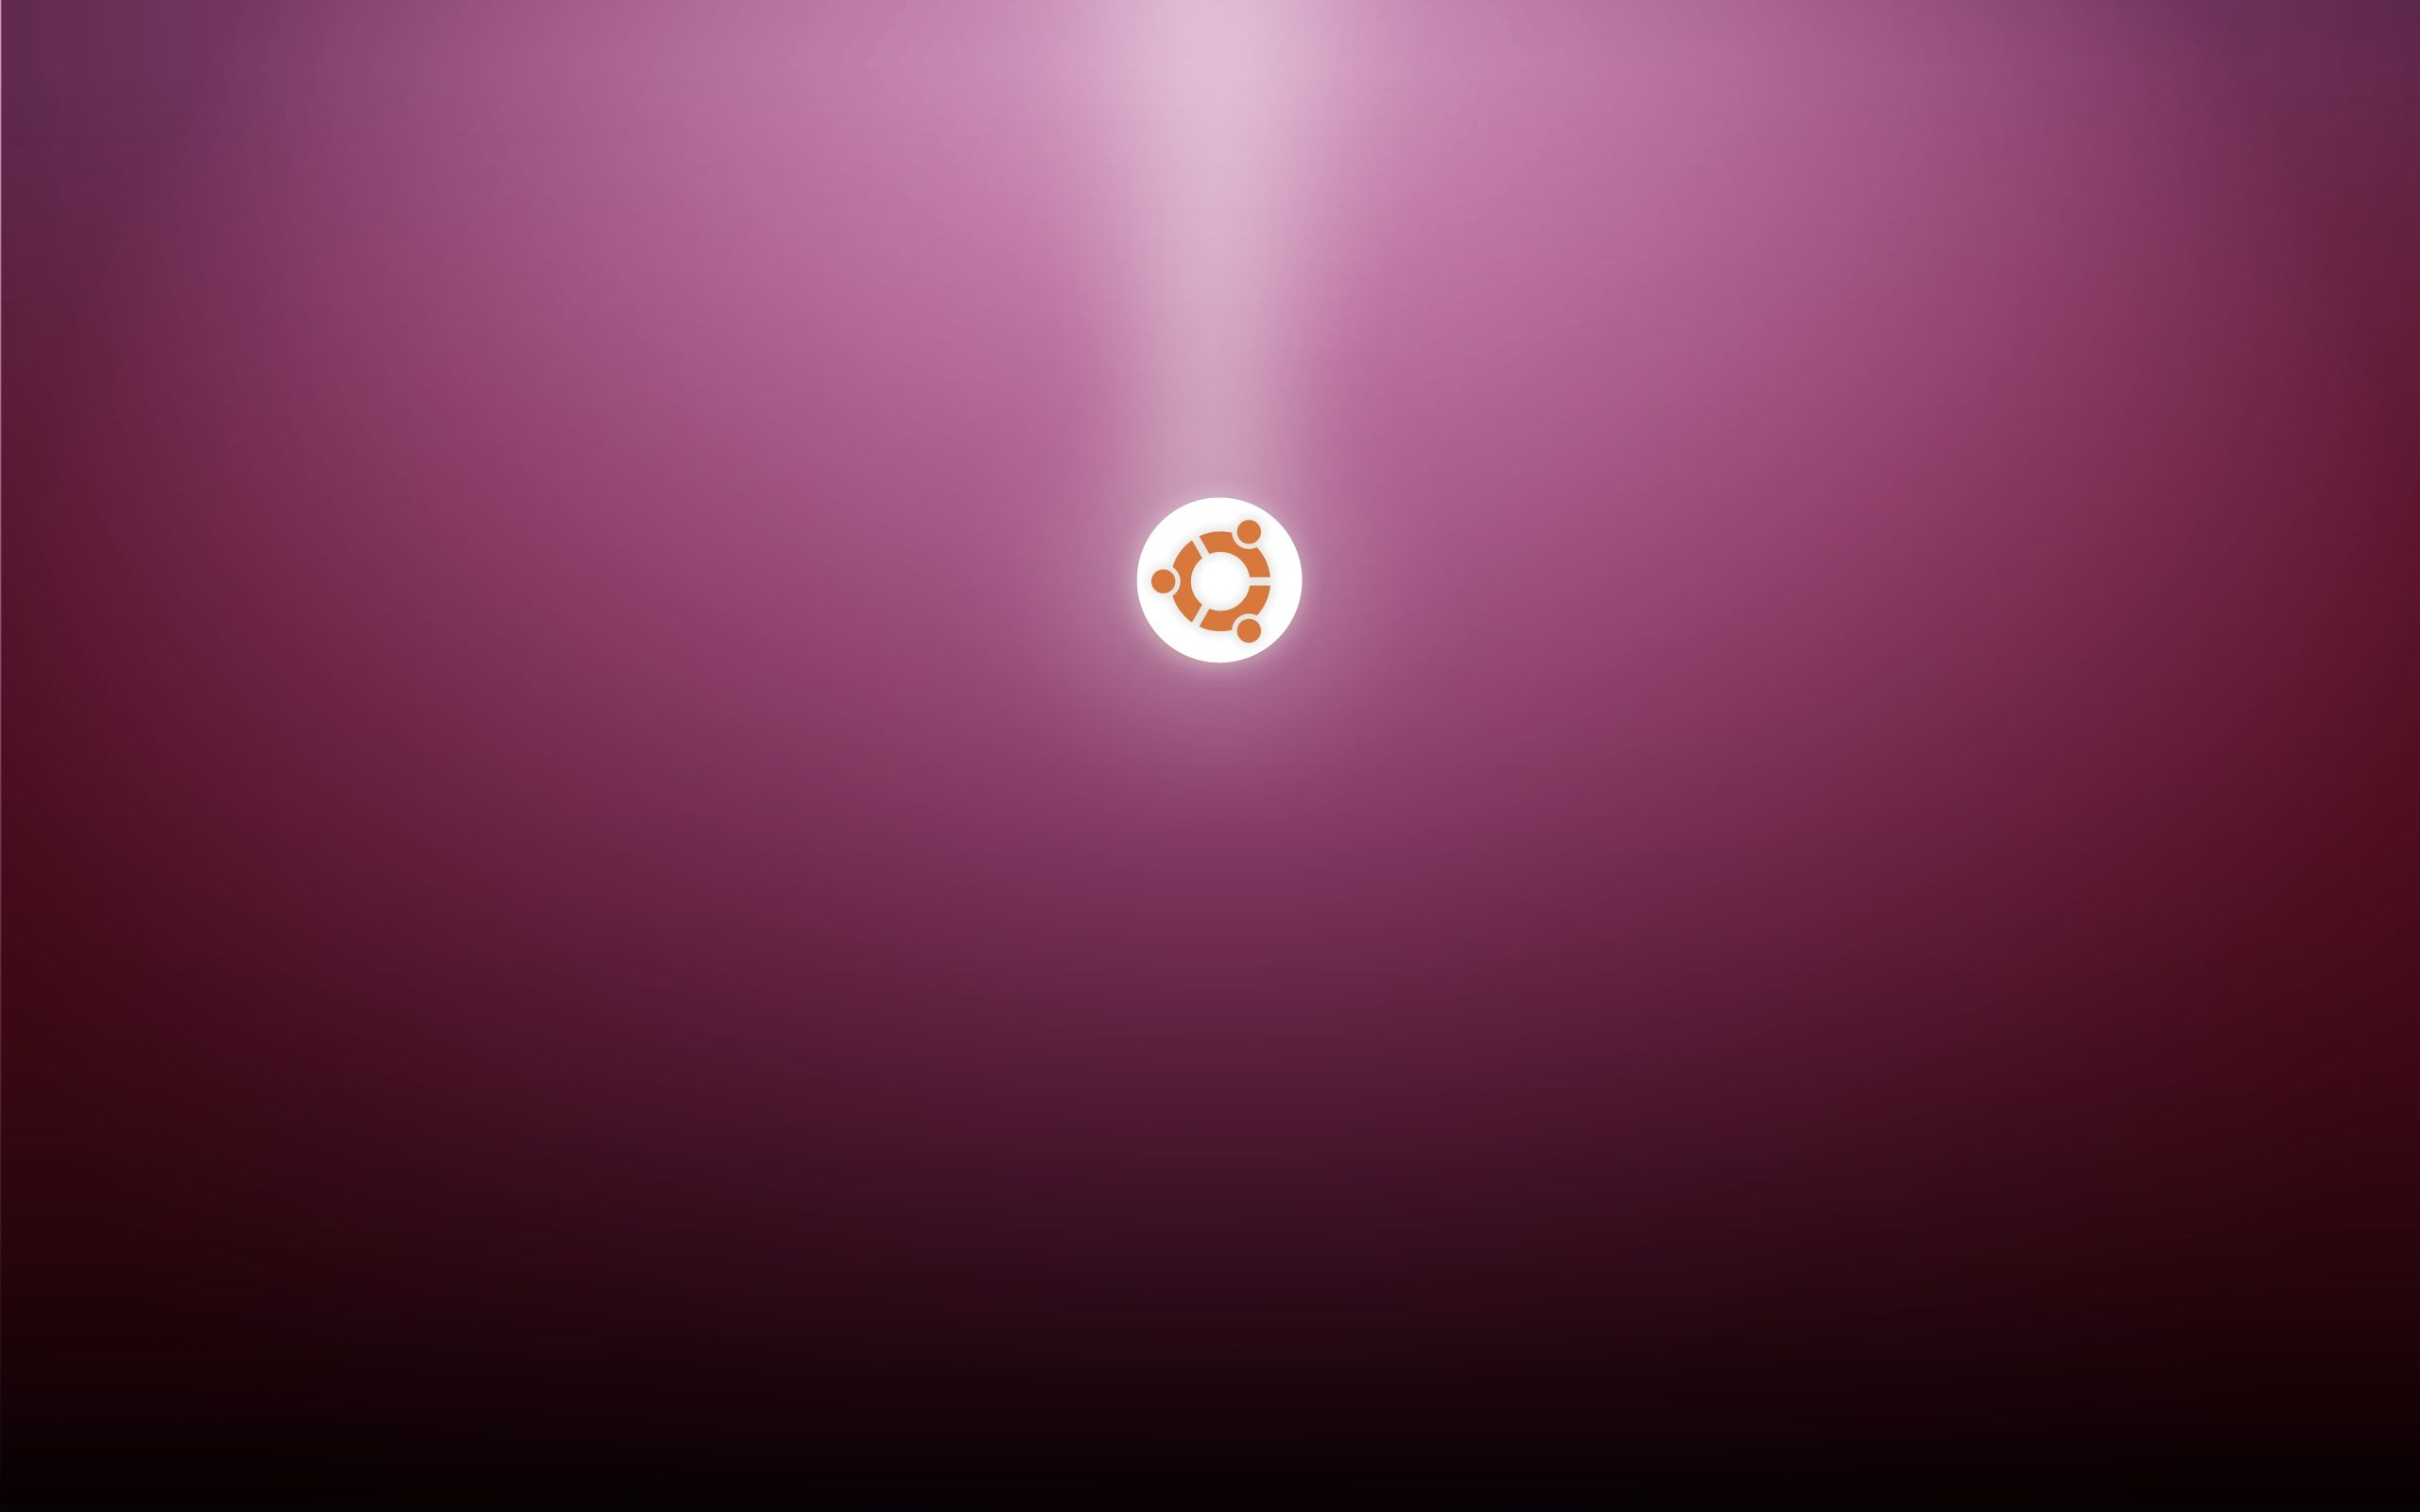 ubuntu wallpaper location 25601600 High Definition Wallpaper 2560x1600